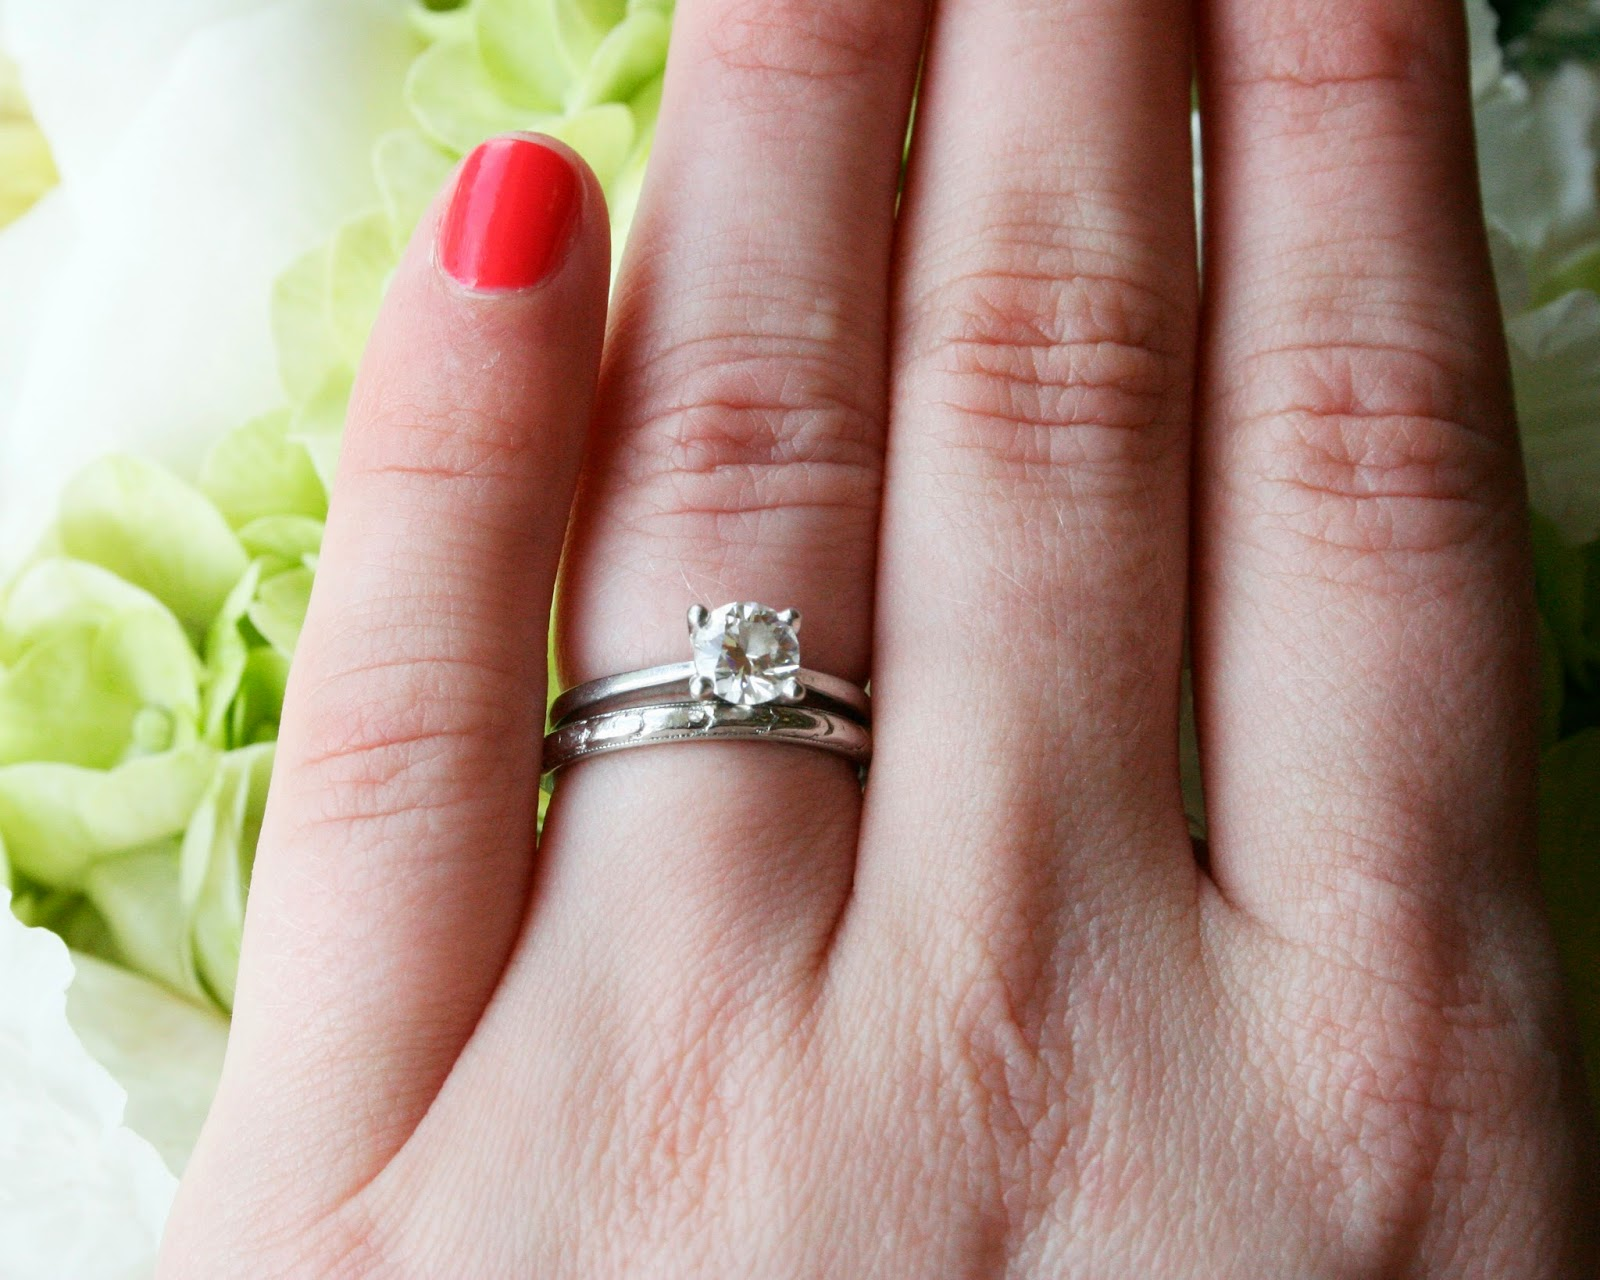 mix match your vintage and new wedding and engagement rings - How Do You Wear Your Wedding Rings